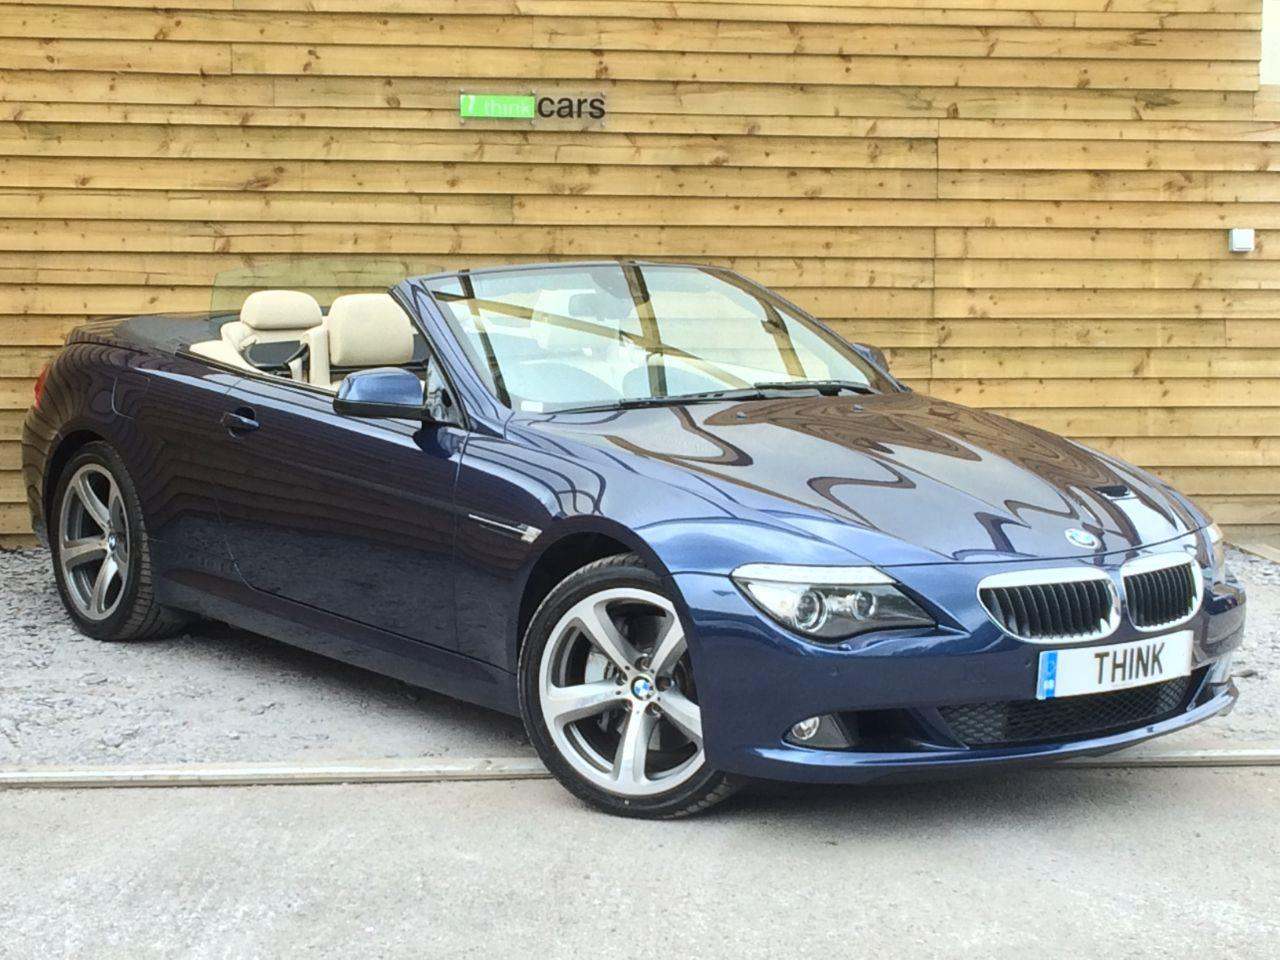 BMW 6 series 635d 2009 photo - 9